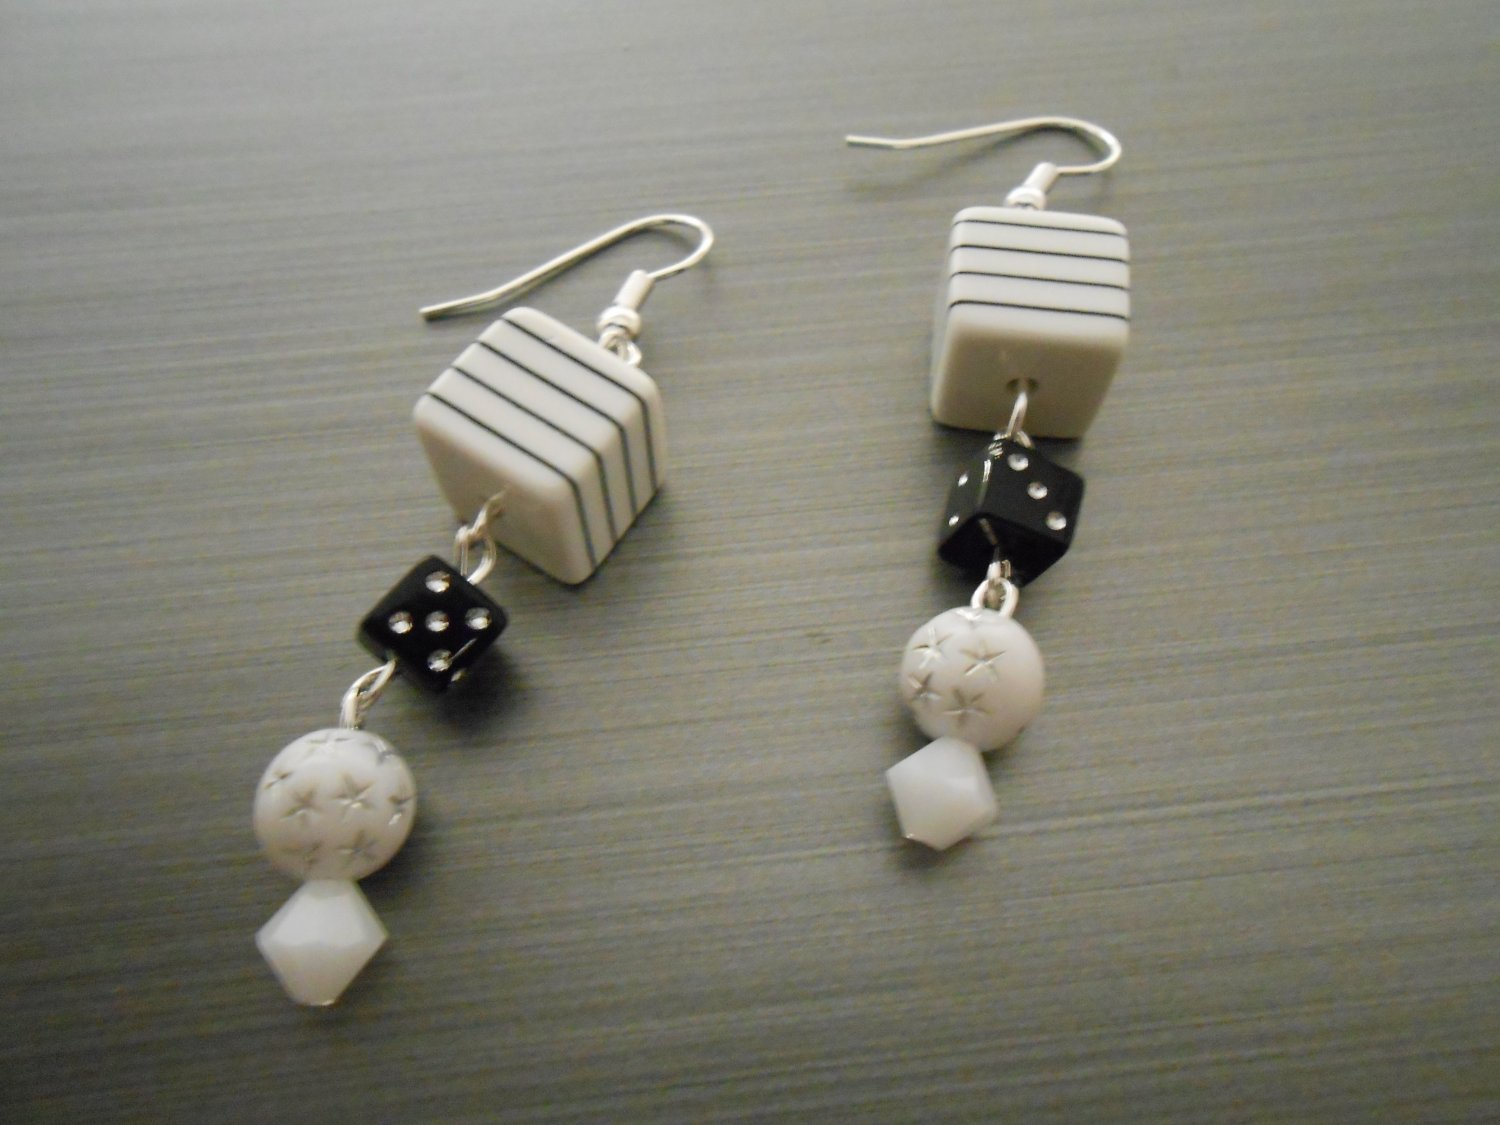 Black and White Earrings with Small Dice